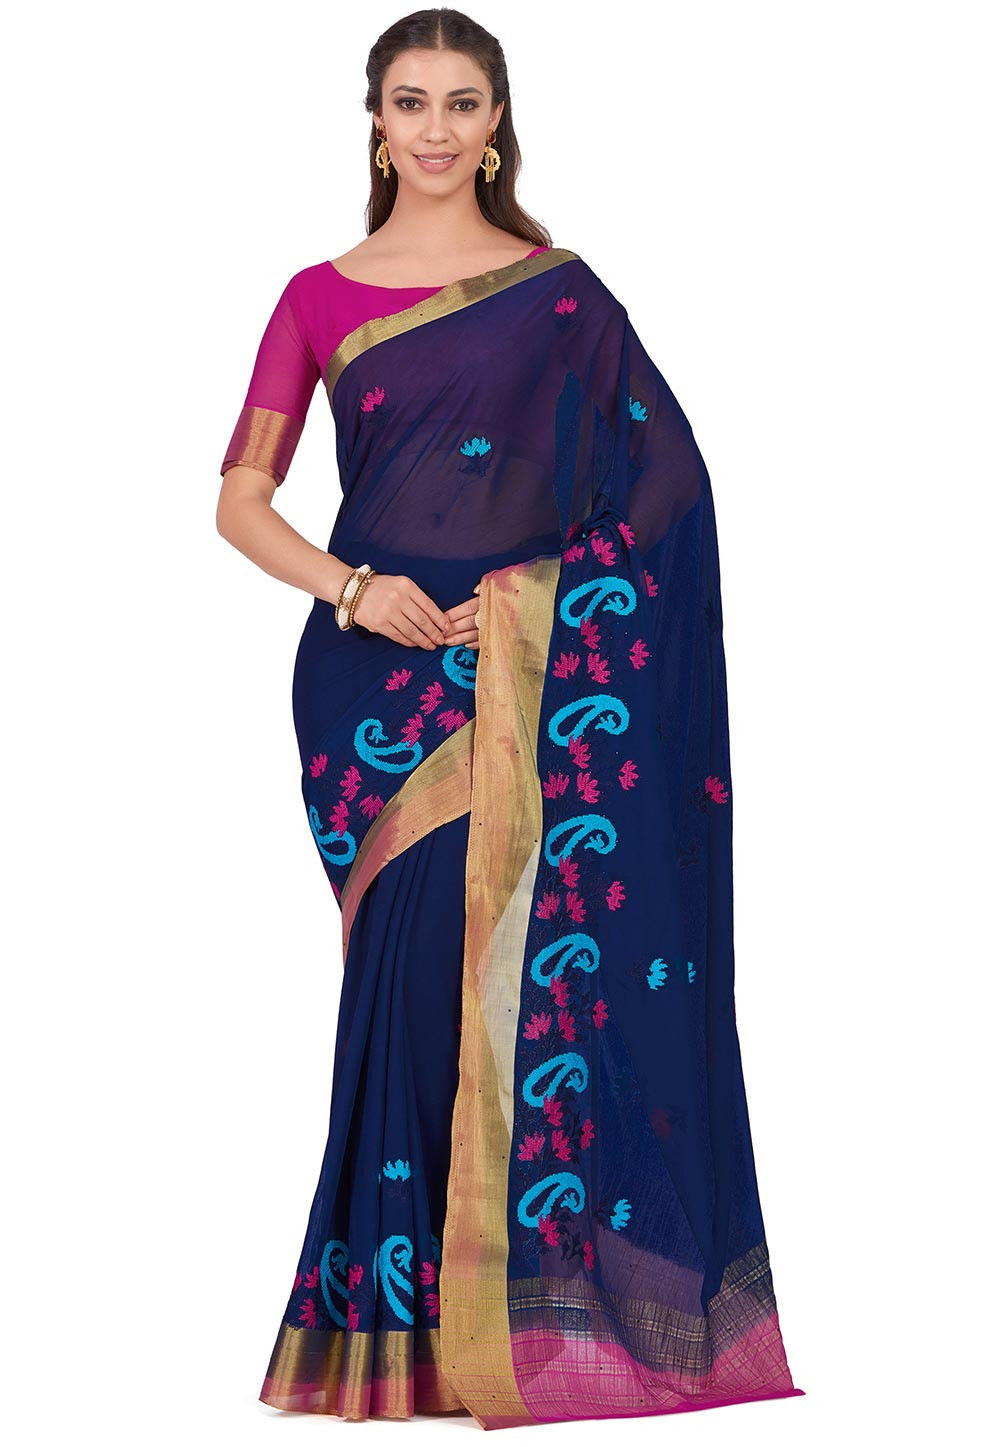 Embroidered Chiffon Saree in Navy Blue